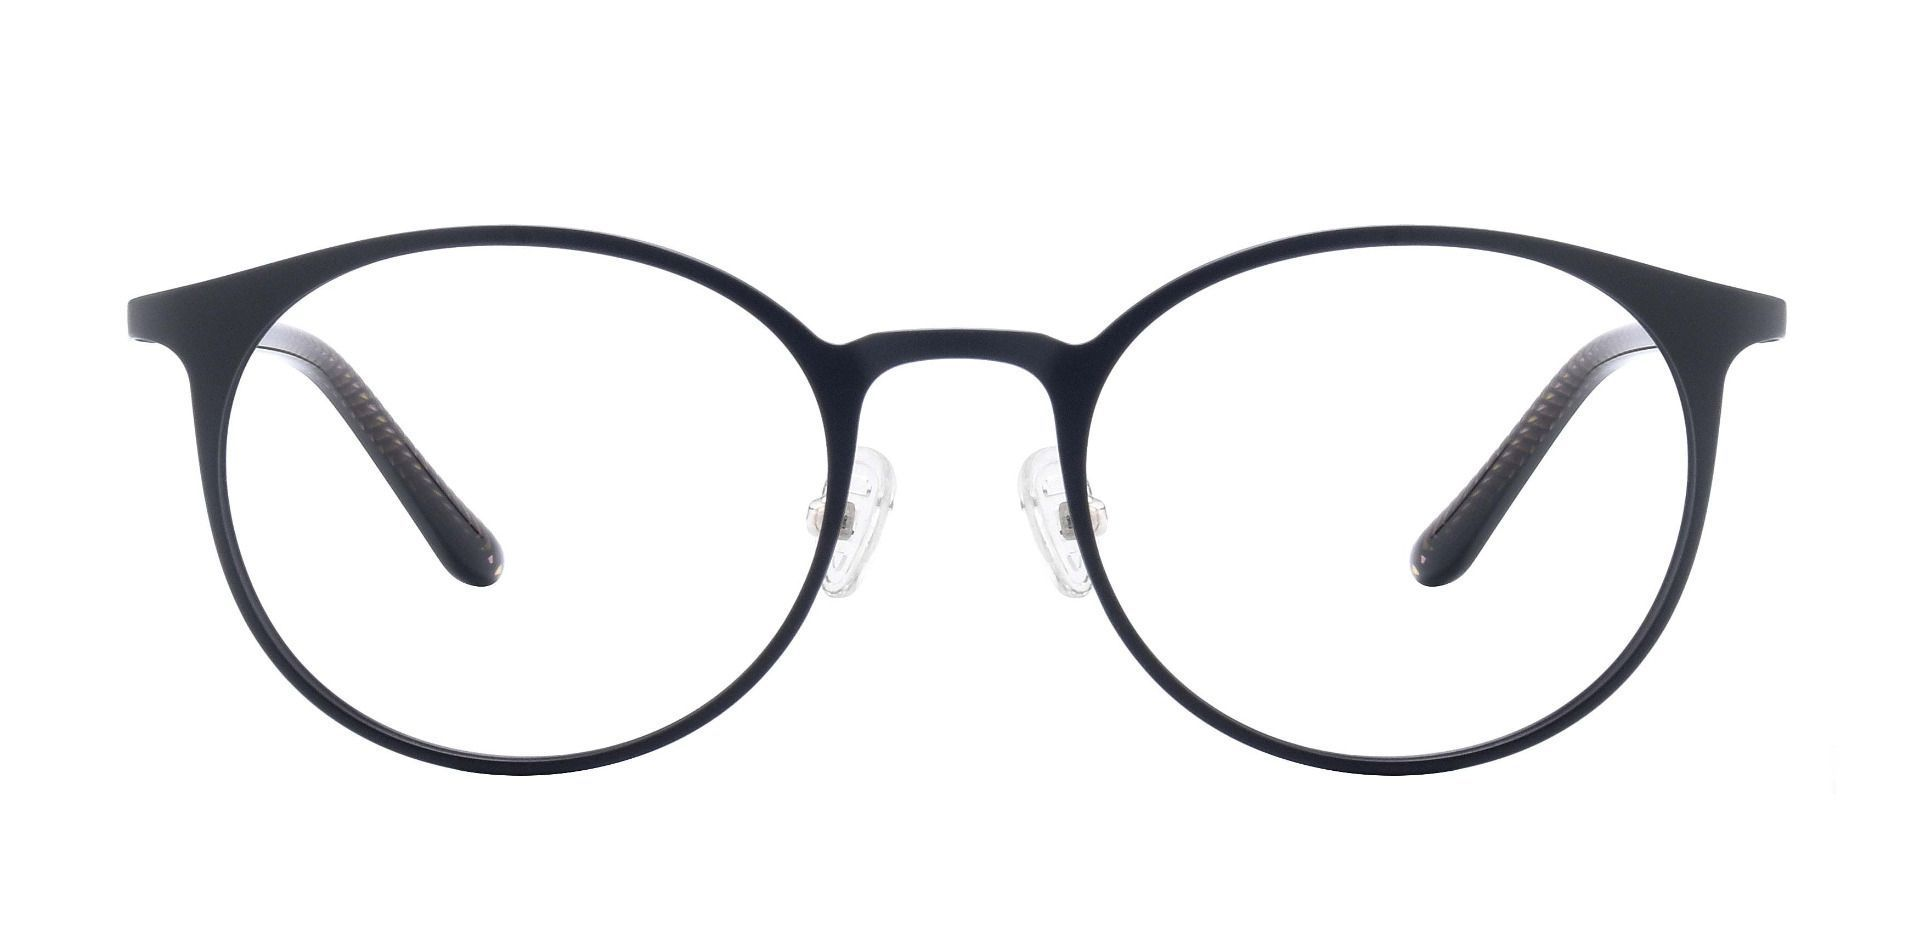 Rivera Oval Prescription Glasses - Black